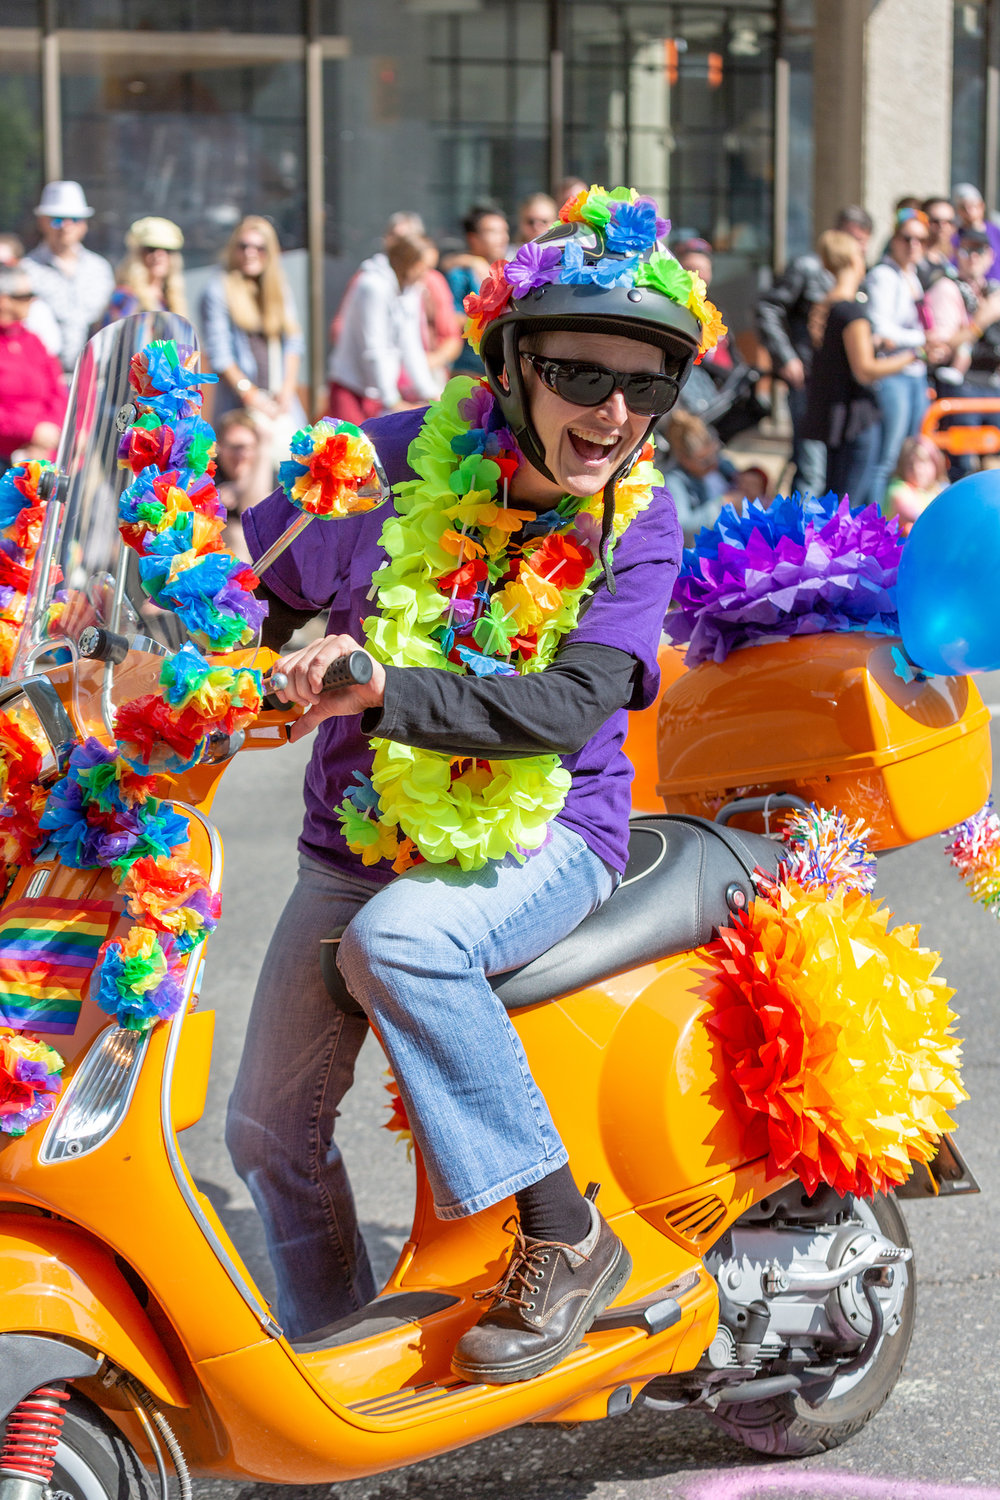 Scooter covered in flowers3.jpg